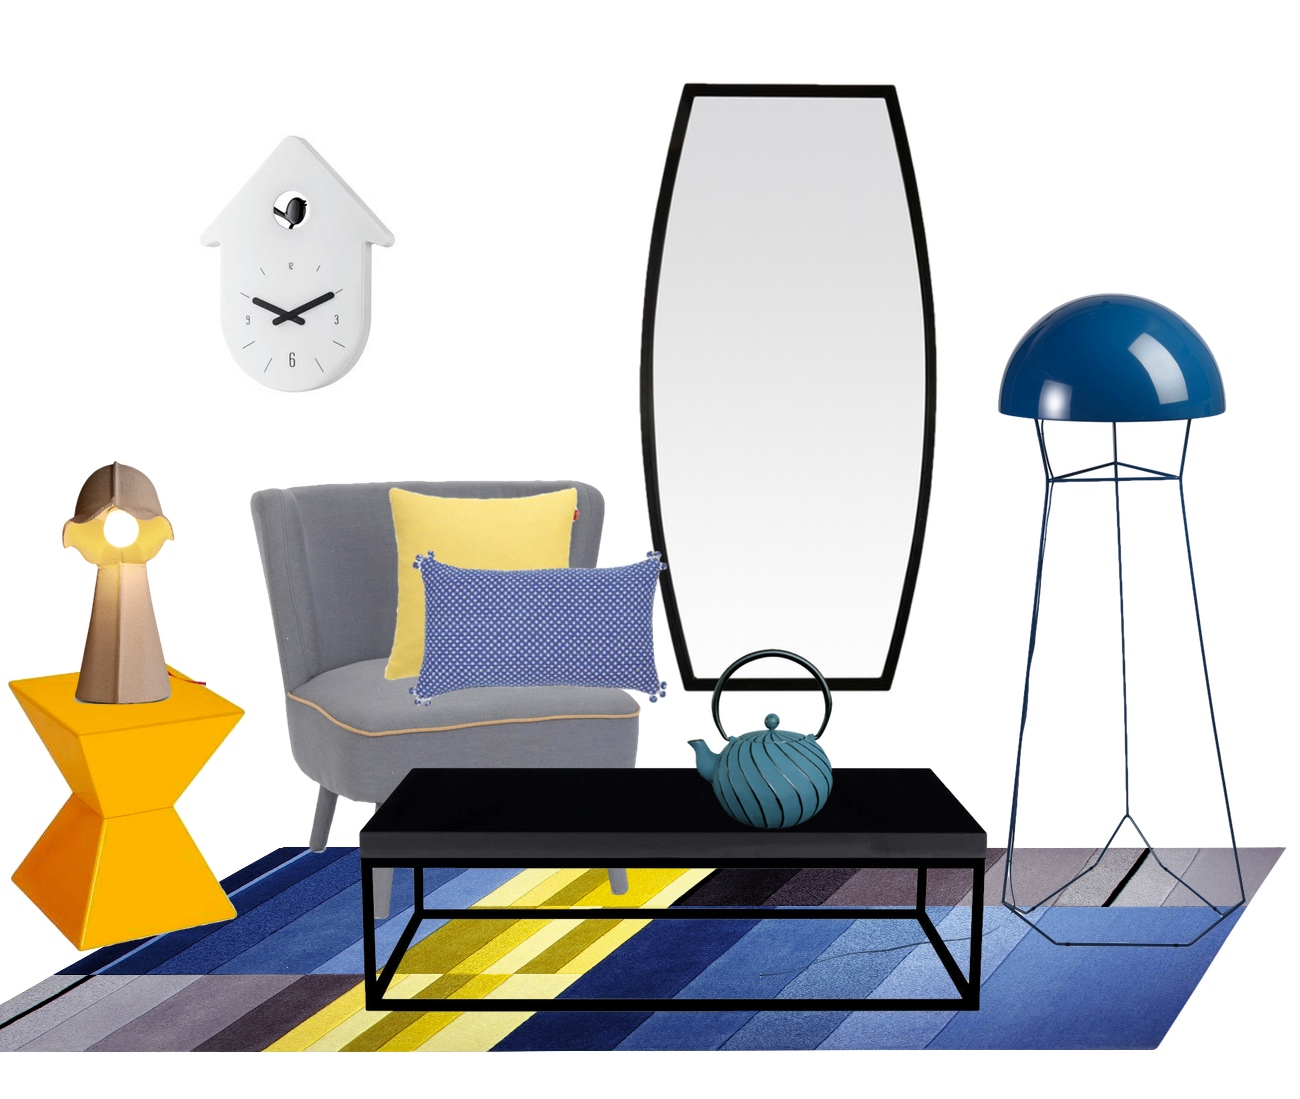 des soldes en jaune et bleu mademoiselle d co blog d co. Black Bedroom Furniture Sets. Home Design Ideas